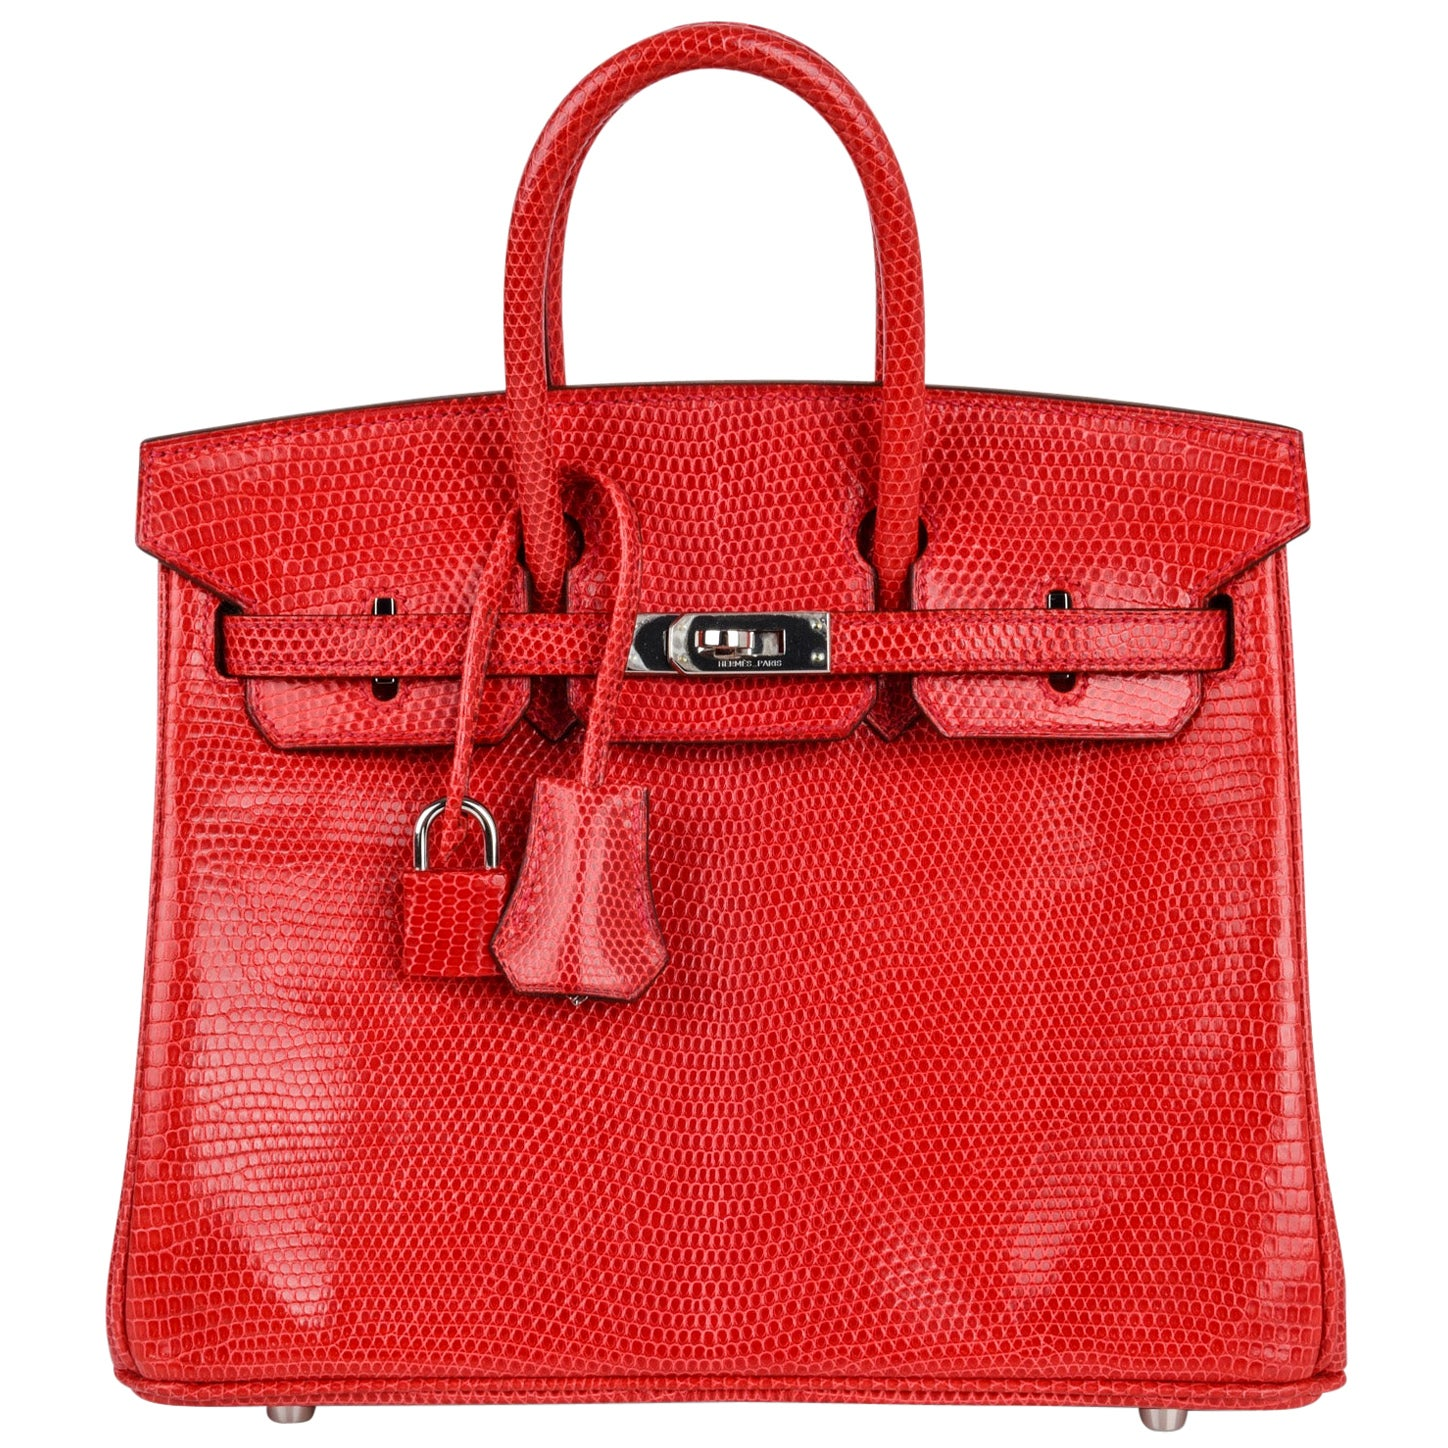 Hermes Birkin 25 Bag Rouge Exotic Lizard Palladium Hardware